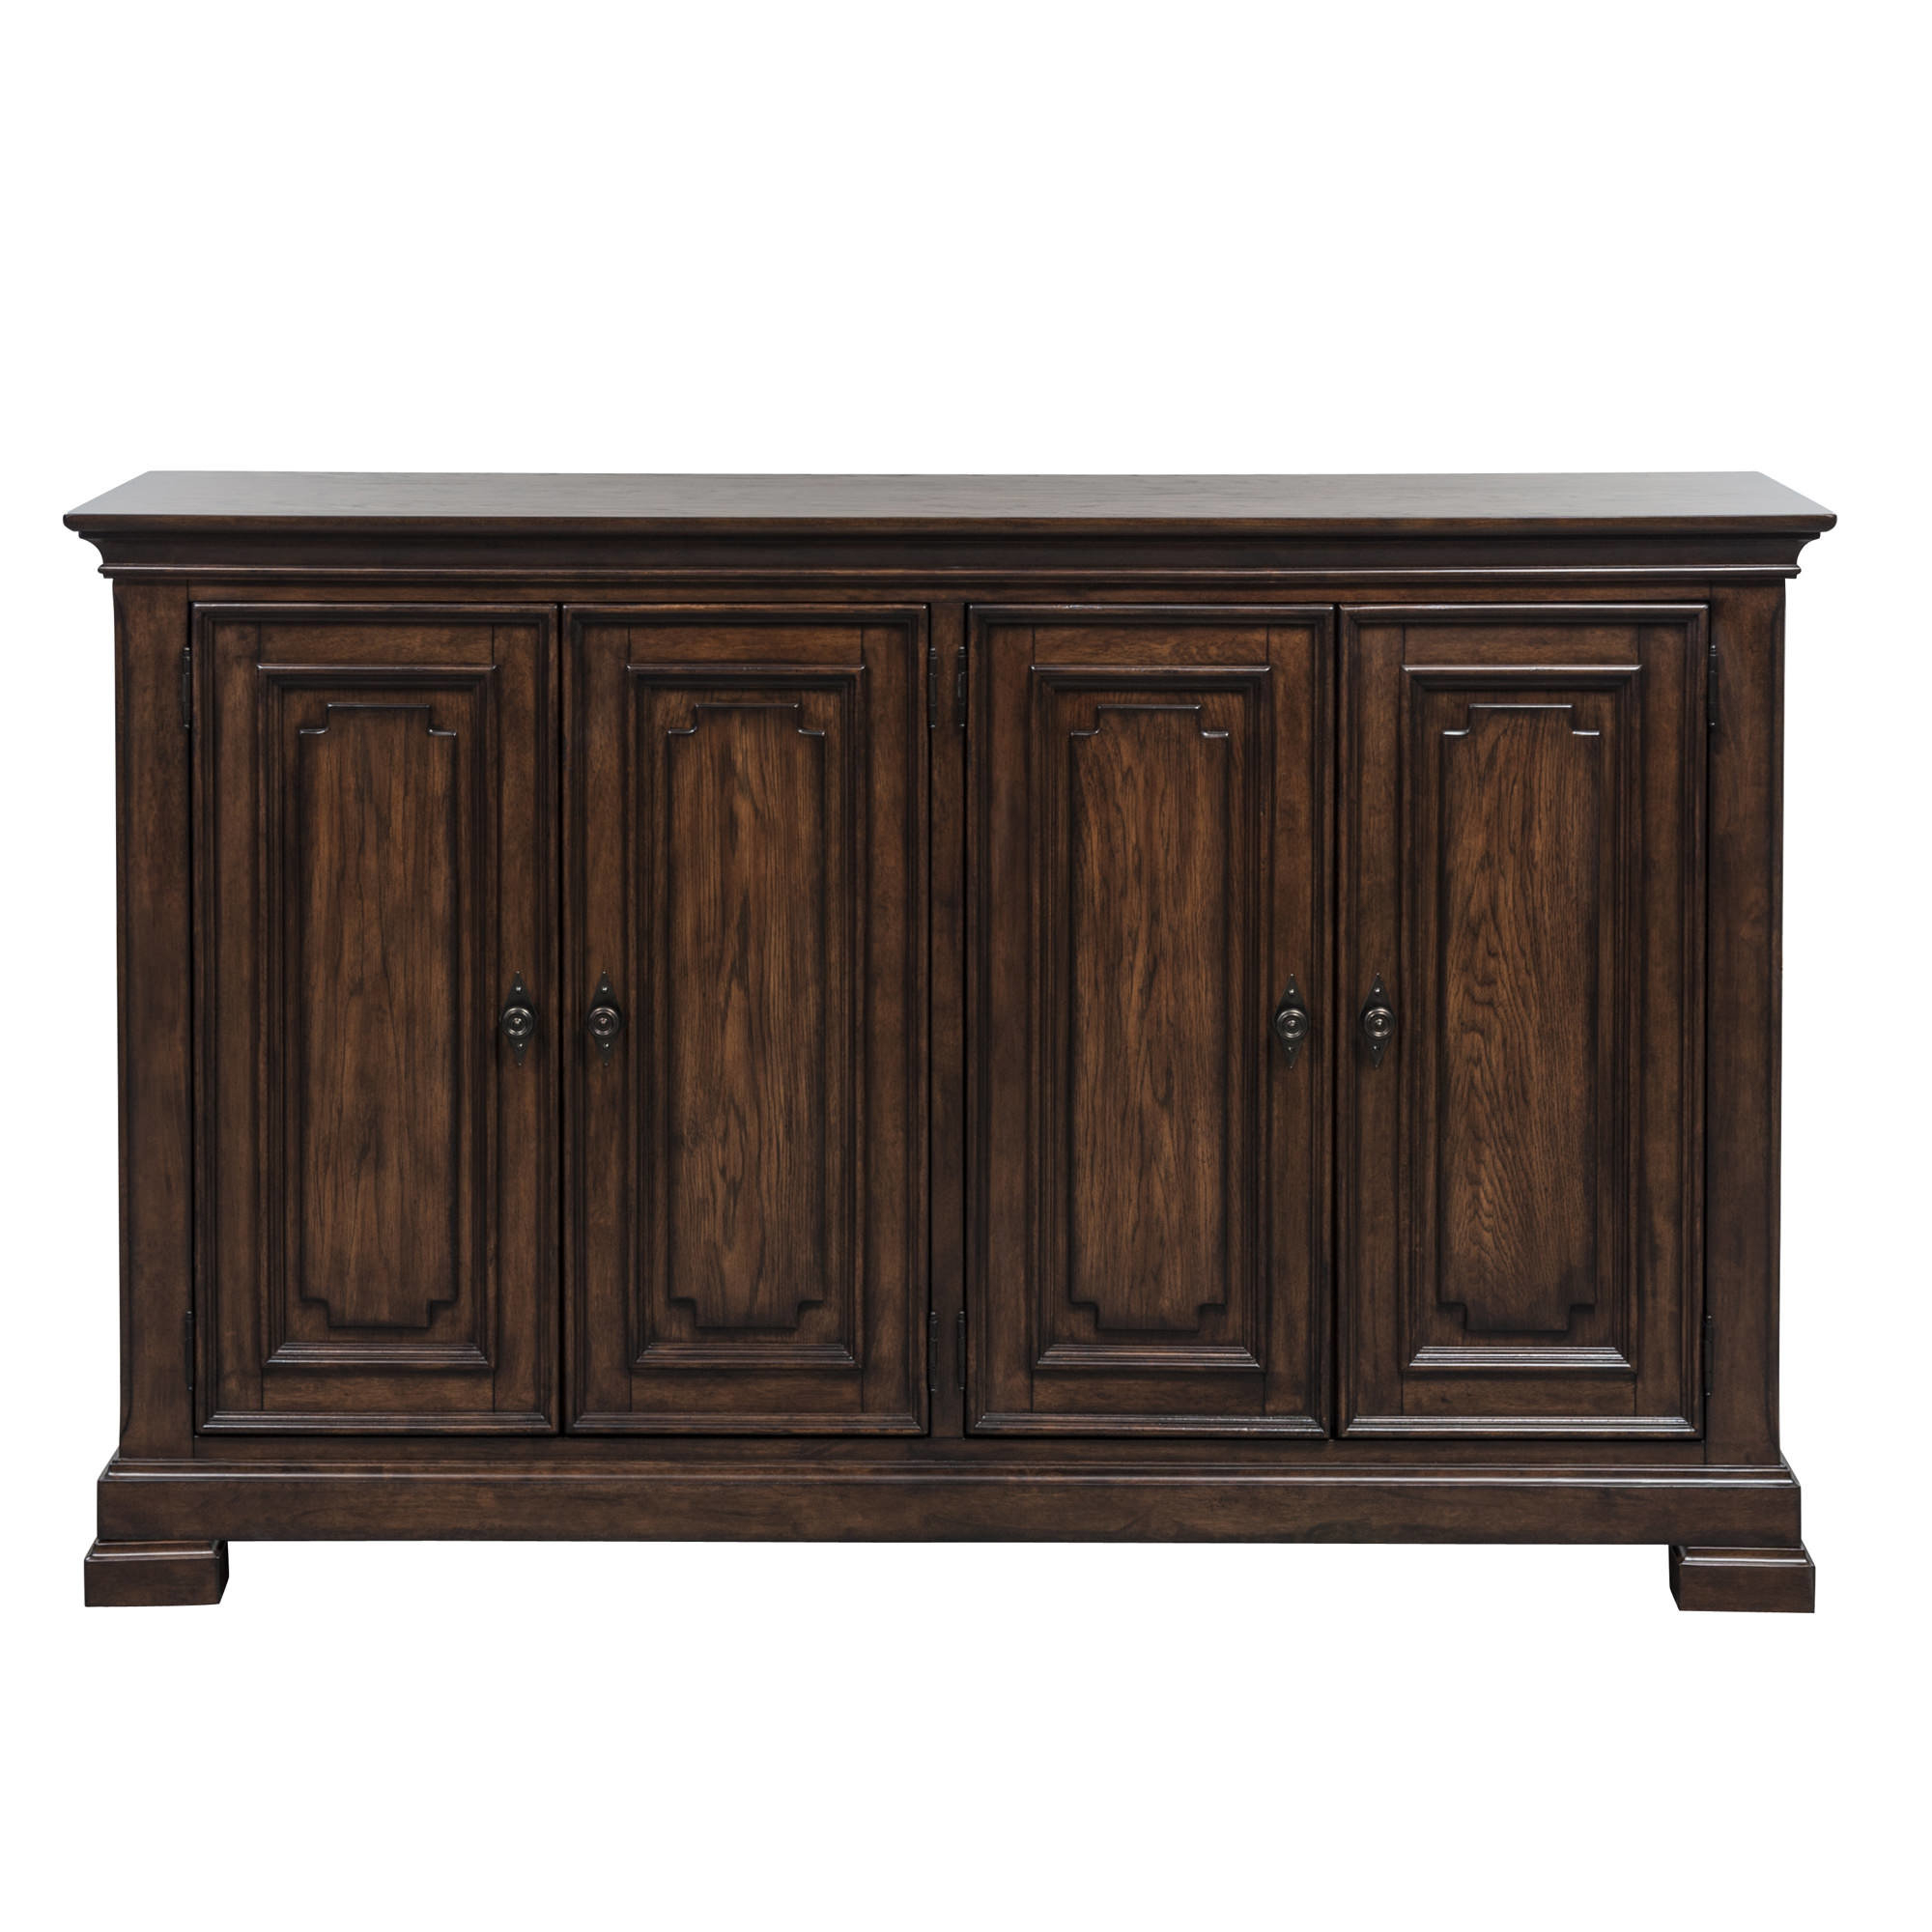 Tribeca Sideboard In Lanesboro Sideboards (View 20 of 20)